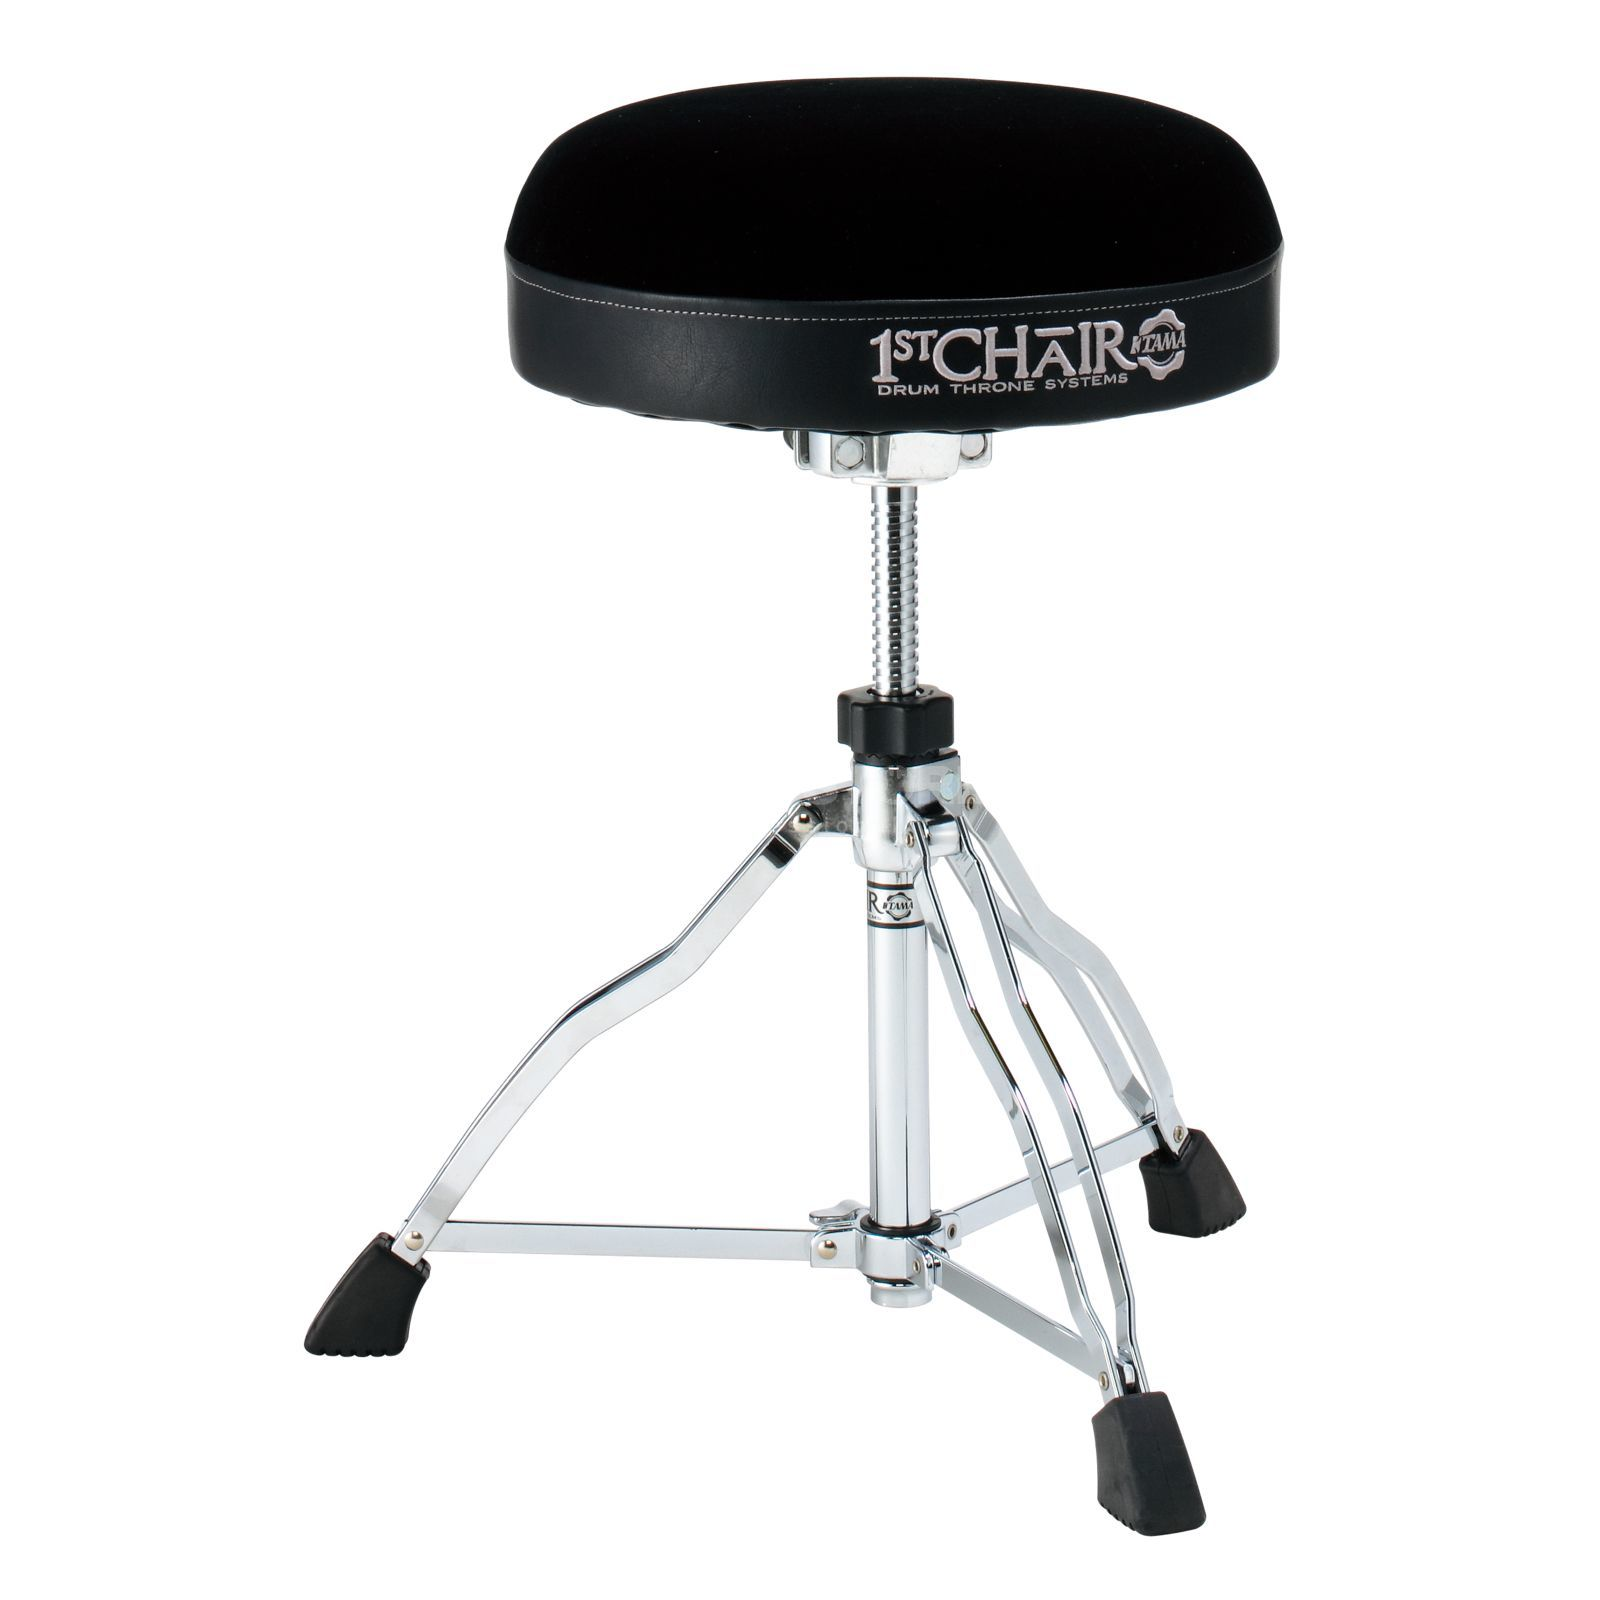 Tama Drum Throne HT630C 1st Chair Round Rider Zdjęcie produktu